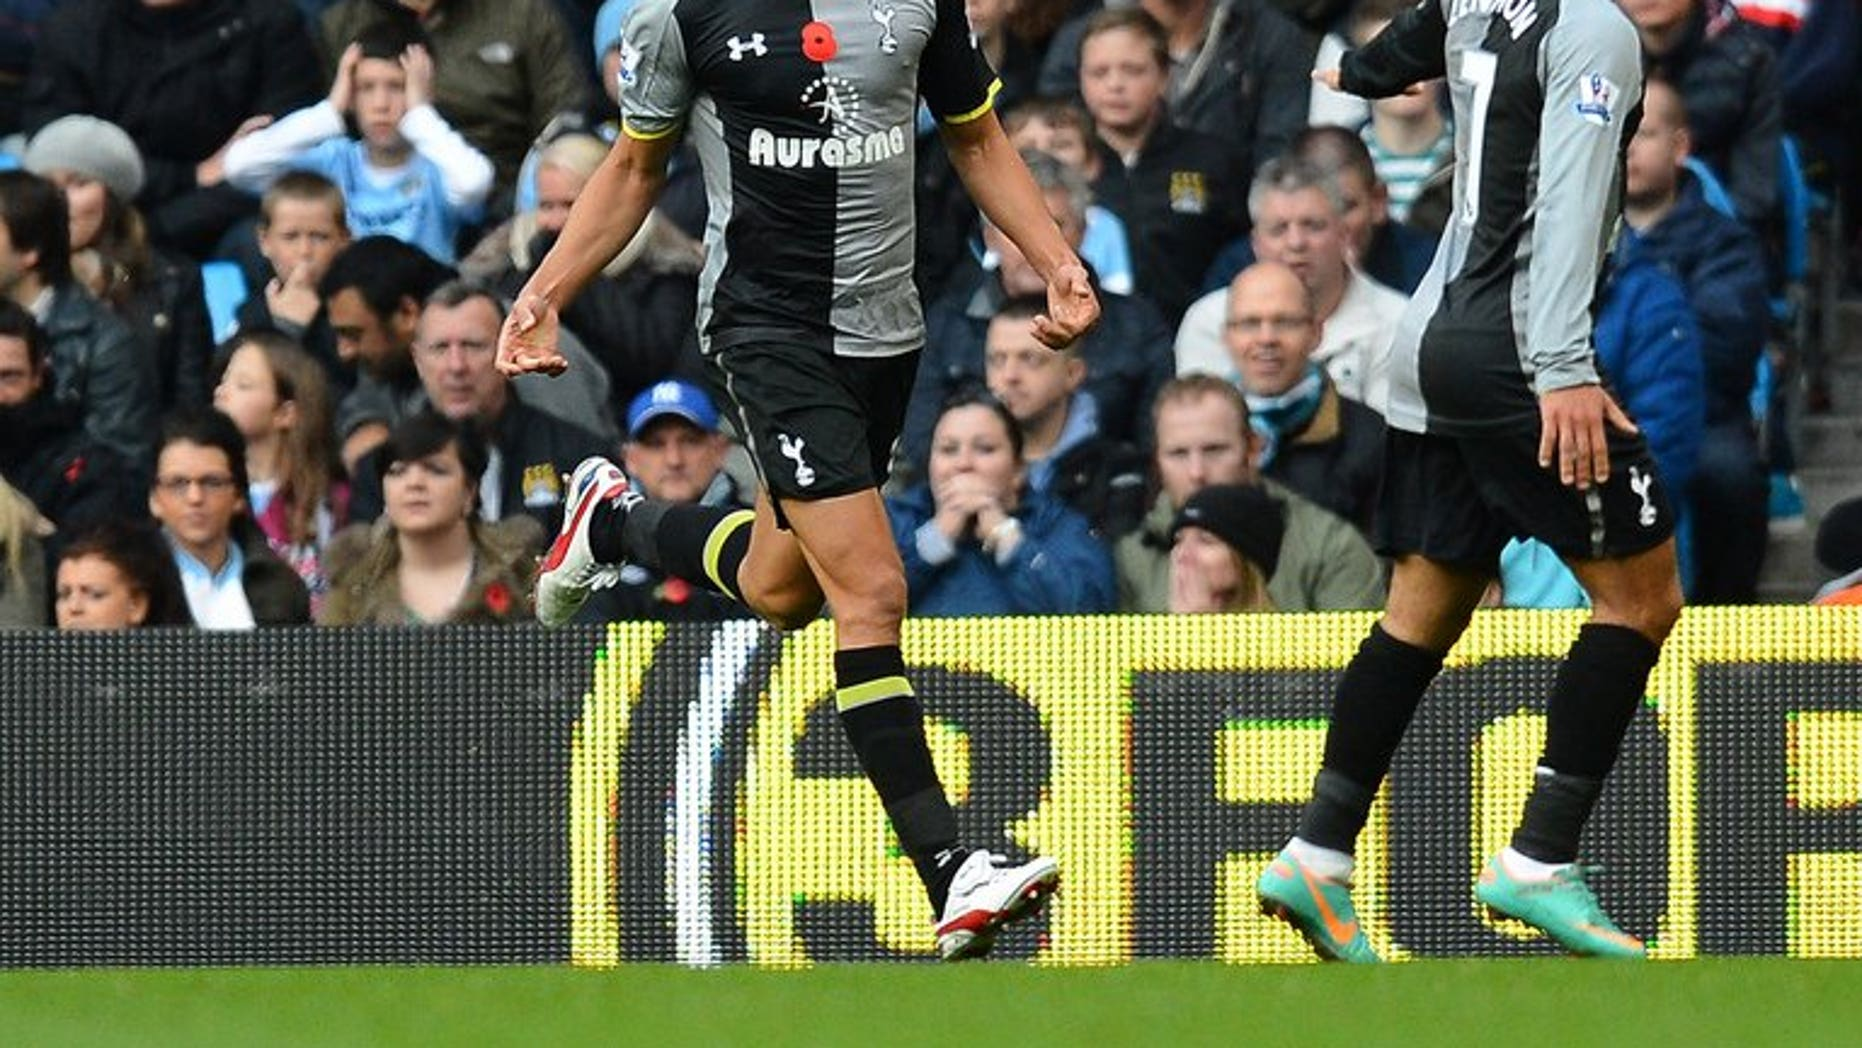 Tottenham Hotspur's English defender Steven Caulker (L) celebrates after scoring at The Etihad stadium in Manchester, north-west England on November 11, 2012. English Premier League newboys Cardiff on Wednesday signed Caulker for a club record fee believed to be in excess of eight million pounds ($12.1million), the BBC reported.